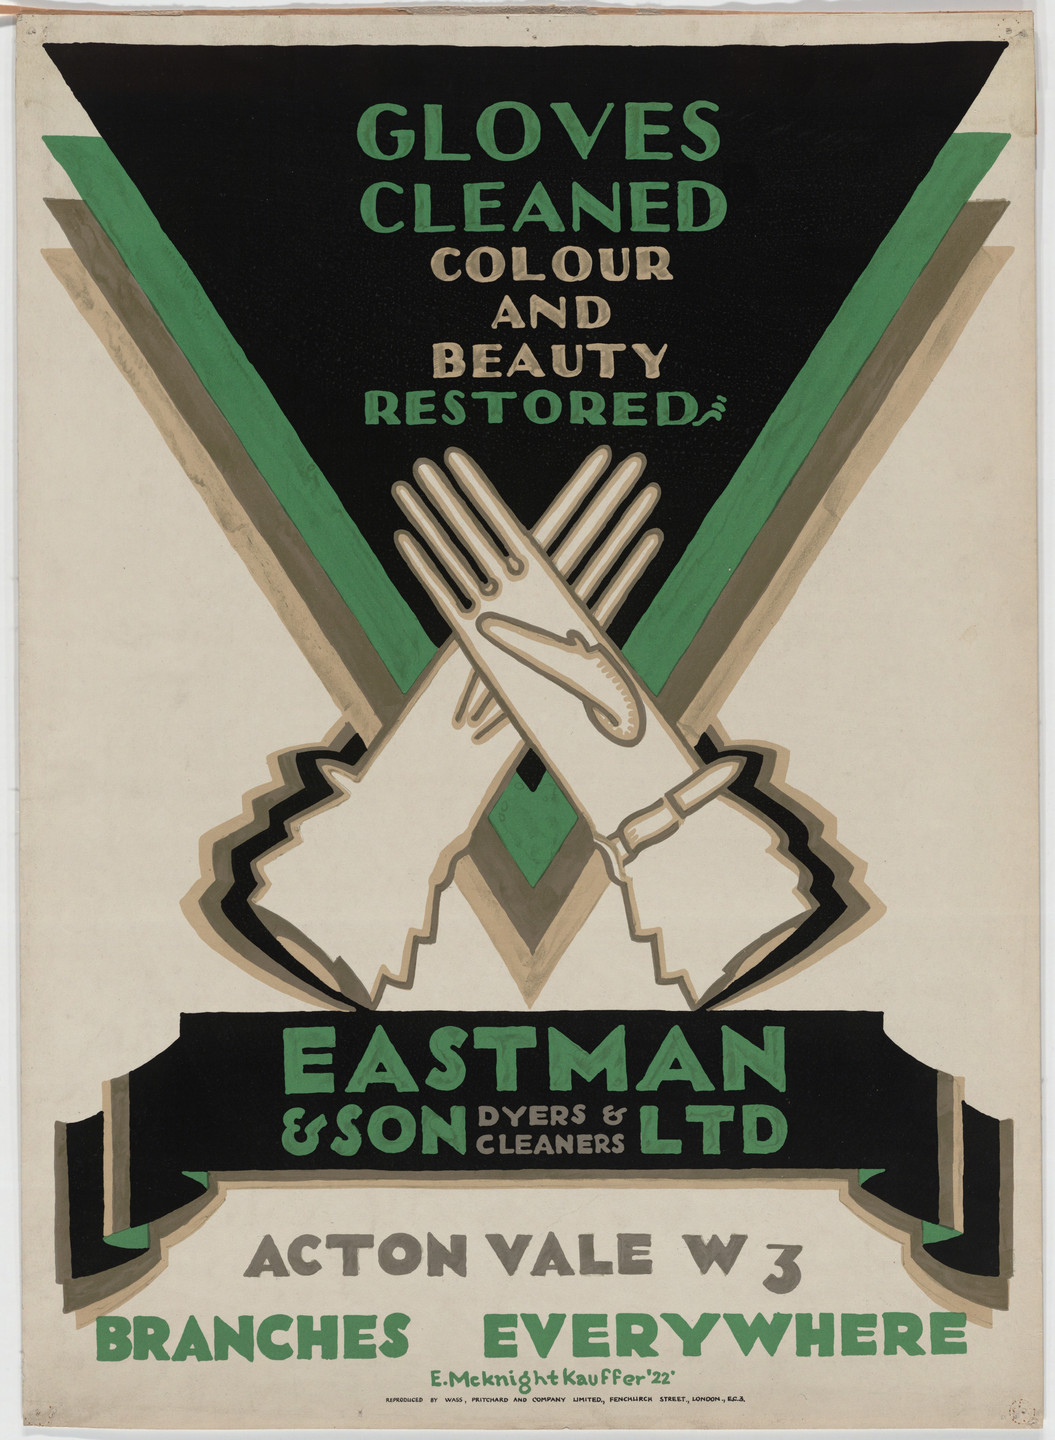 E. McKnight Kauffer. Gloves Cleaned, Colour and Beauty Restored, Eastman & Son, Ltd., Dyers and Cleaners. 1922